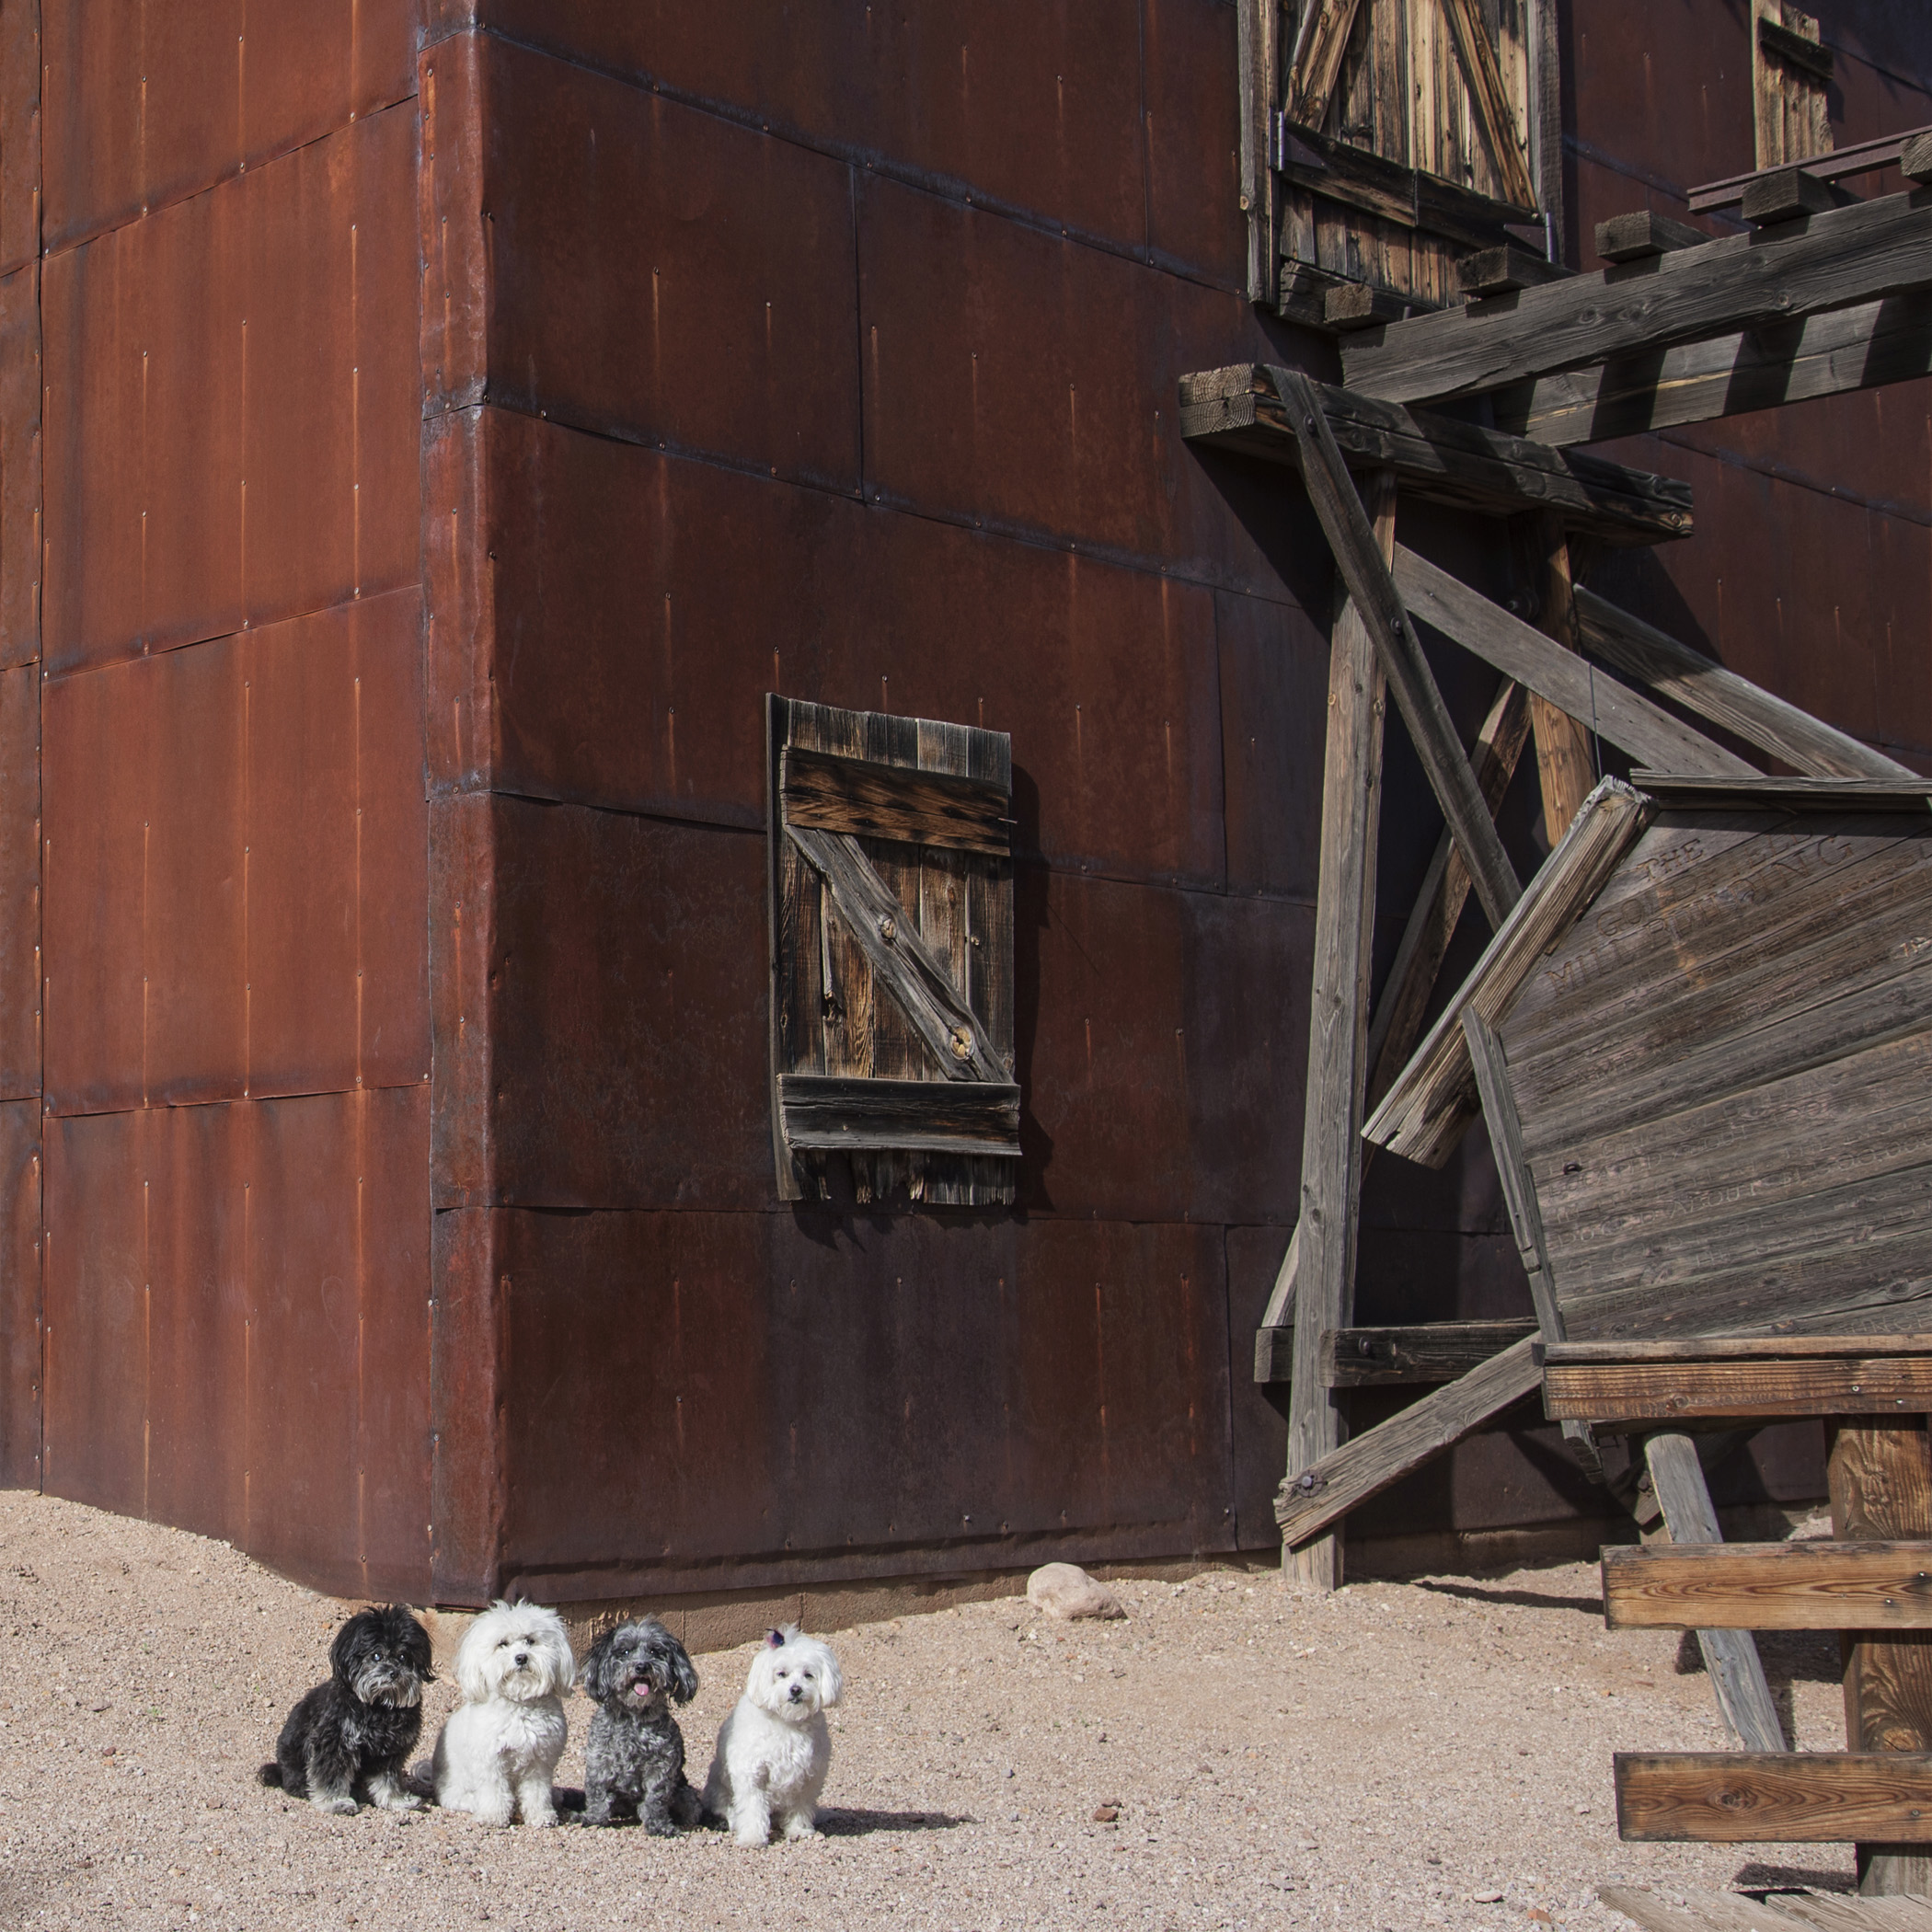 After the museum, we headed to Goldfield Ghost Town. Although Mommy & Daddy said it was safe to go in, we weren't so sure! Looks pretty abandoned and creepy to us!